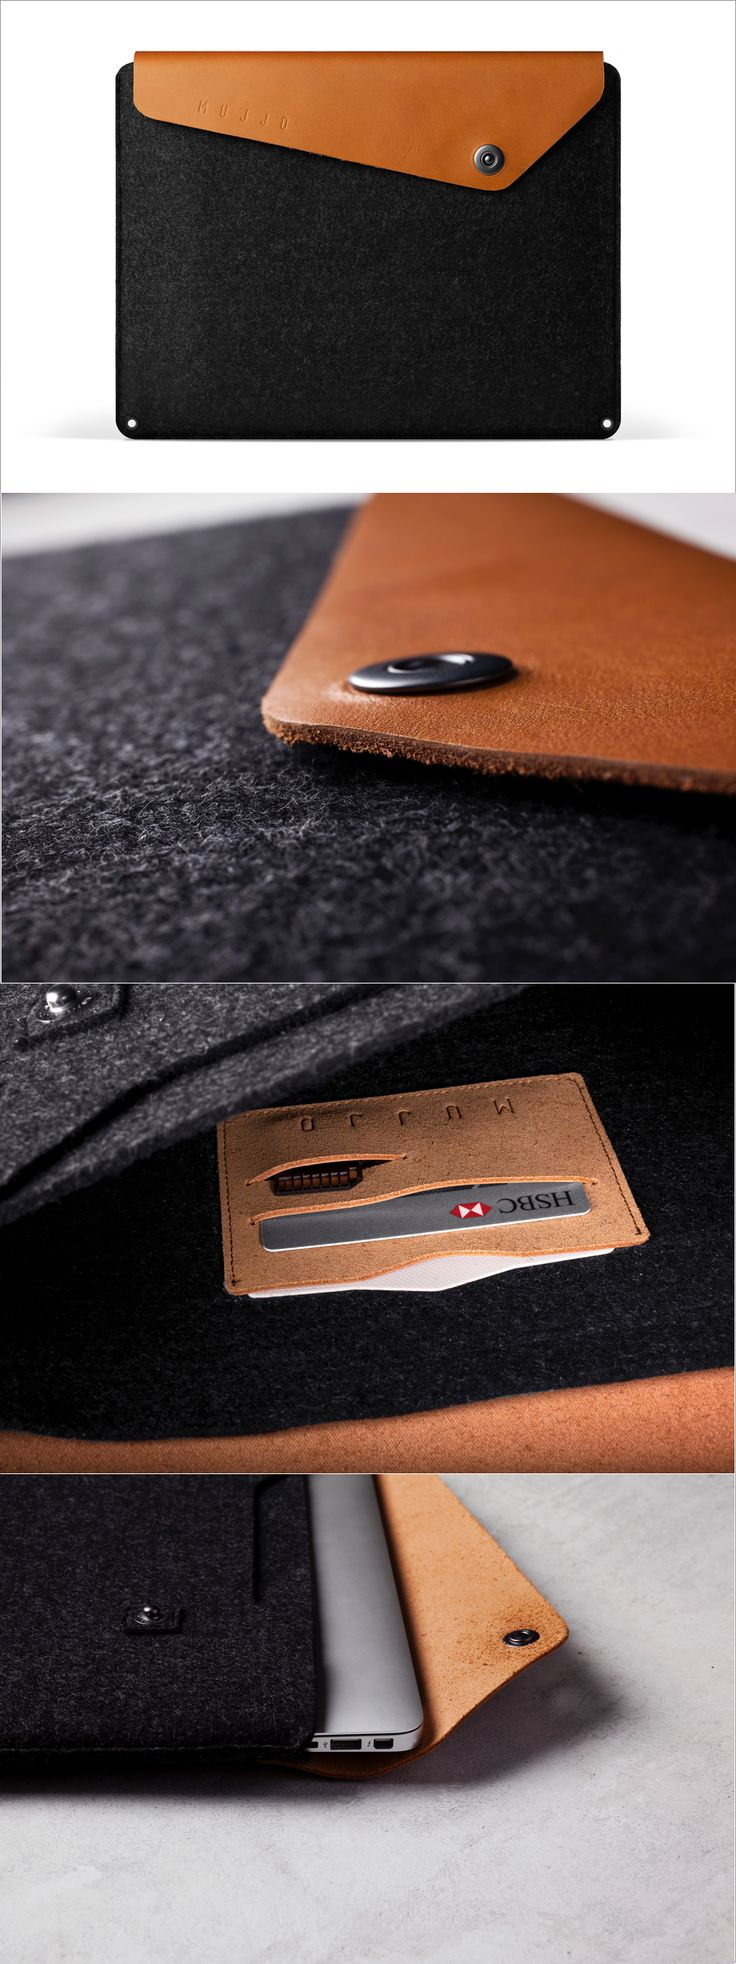 "Crafted out of a unique combination of felt and vegetable-tanned leather, this quintessential sleeve has been designed to fit both the 13"" Macbook Air and 13"" Macbook Pro Retina."